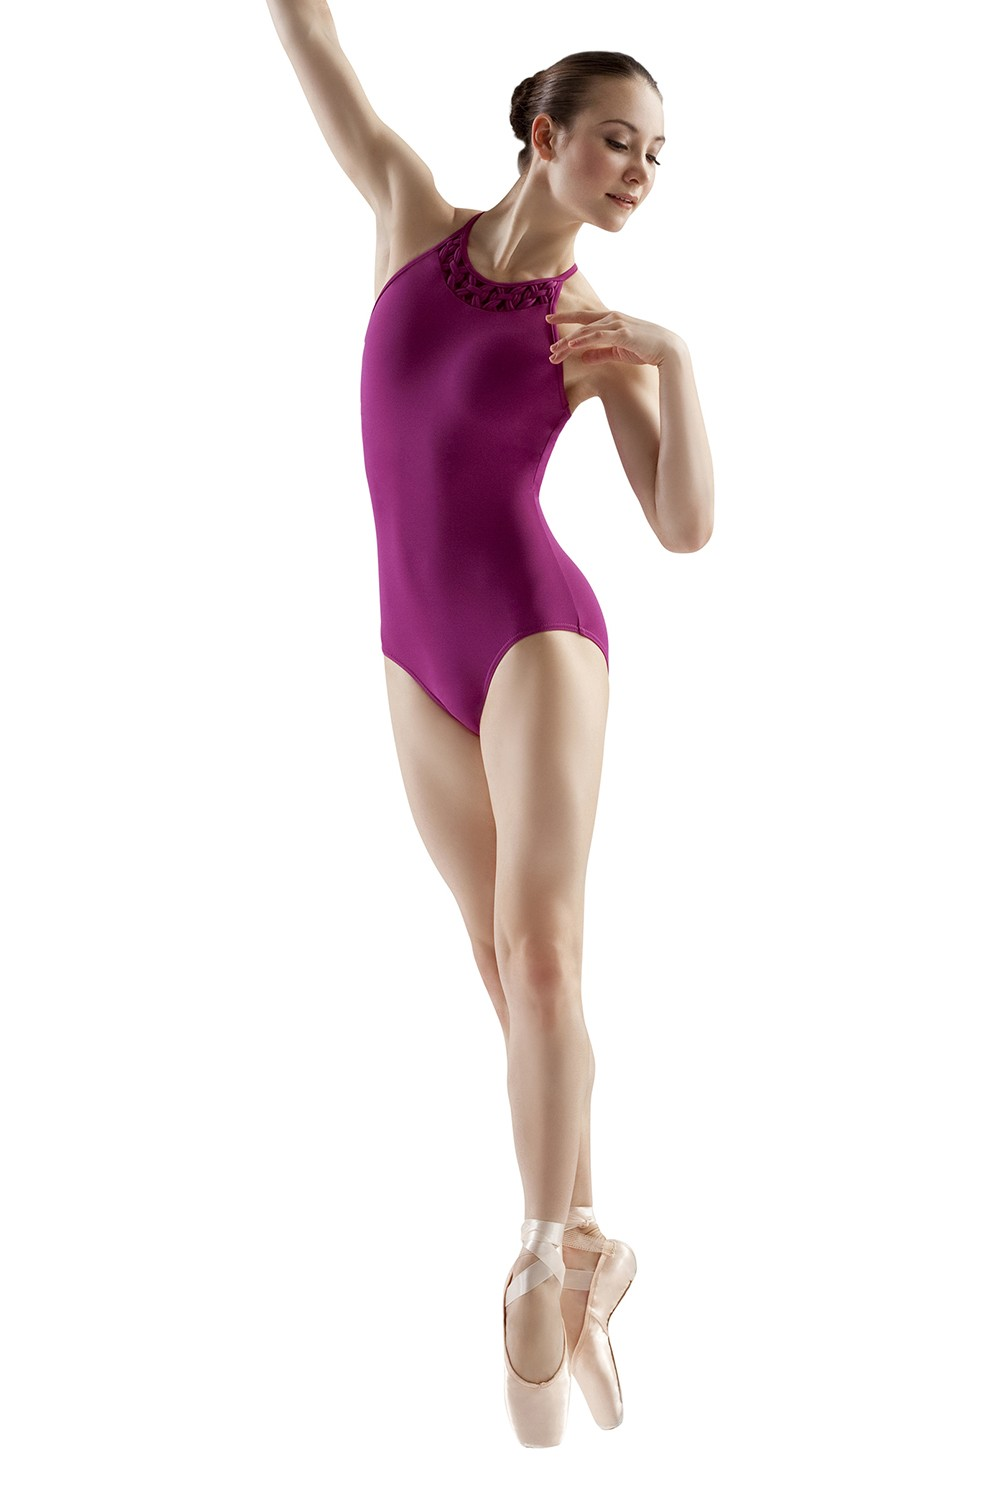 Rouleaux High Neck Leo Women's Dance Leotards